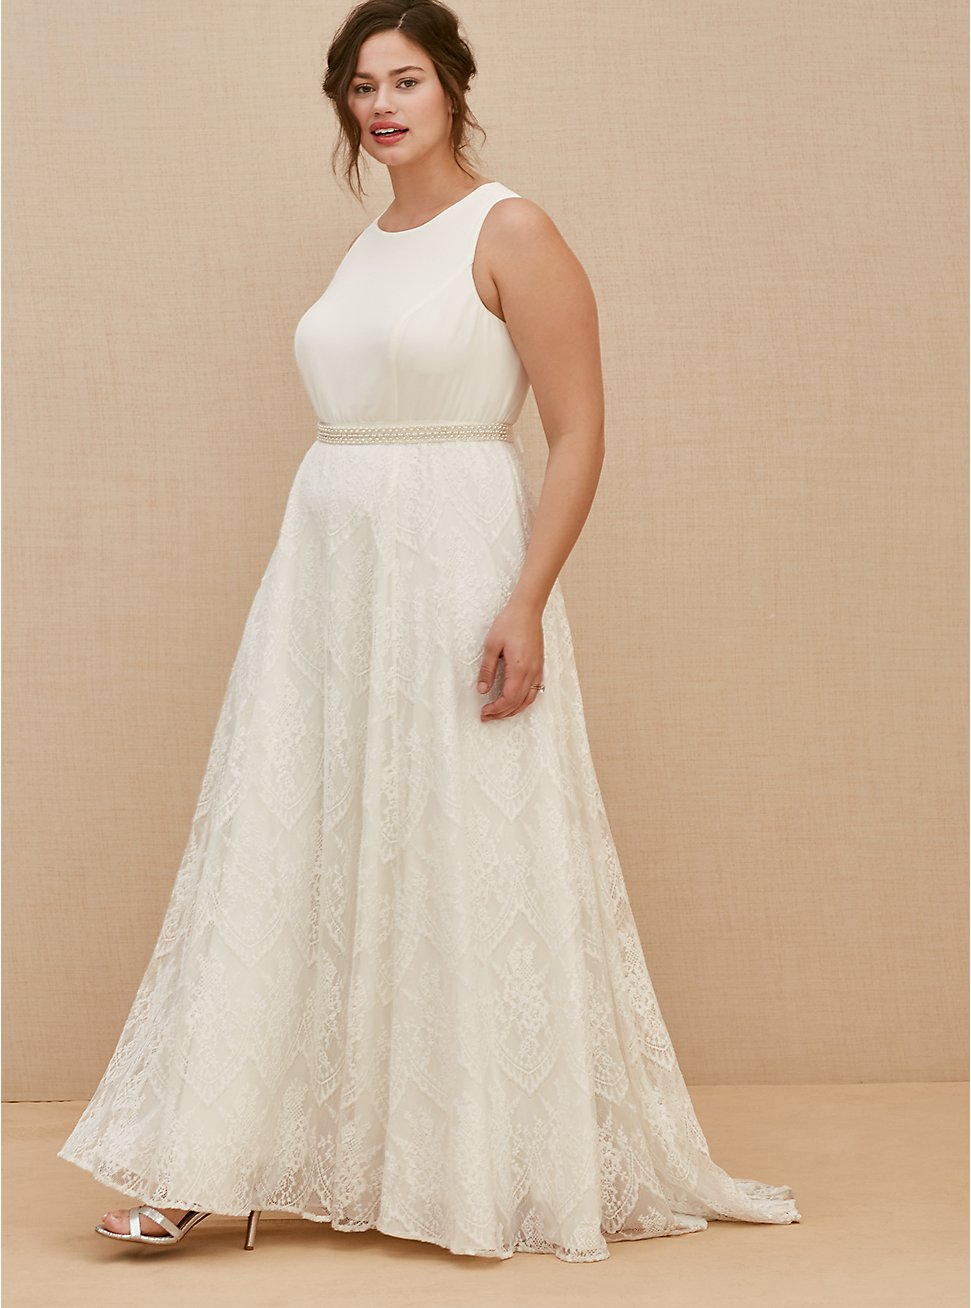 Special Occasion Ivory Lace Gown with Sash Belt, CLOUD DANCER, hi-res